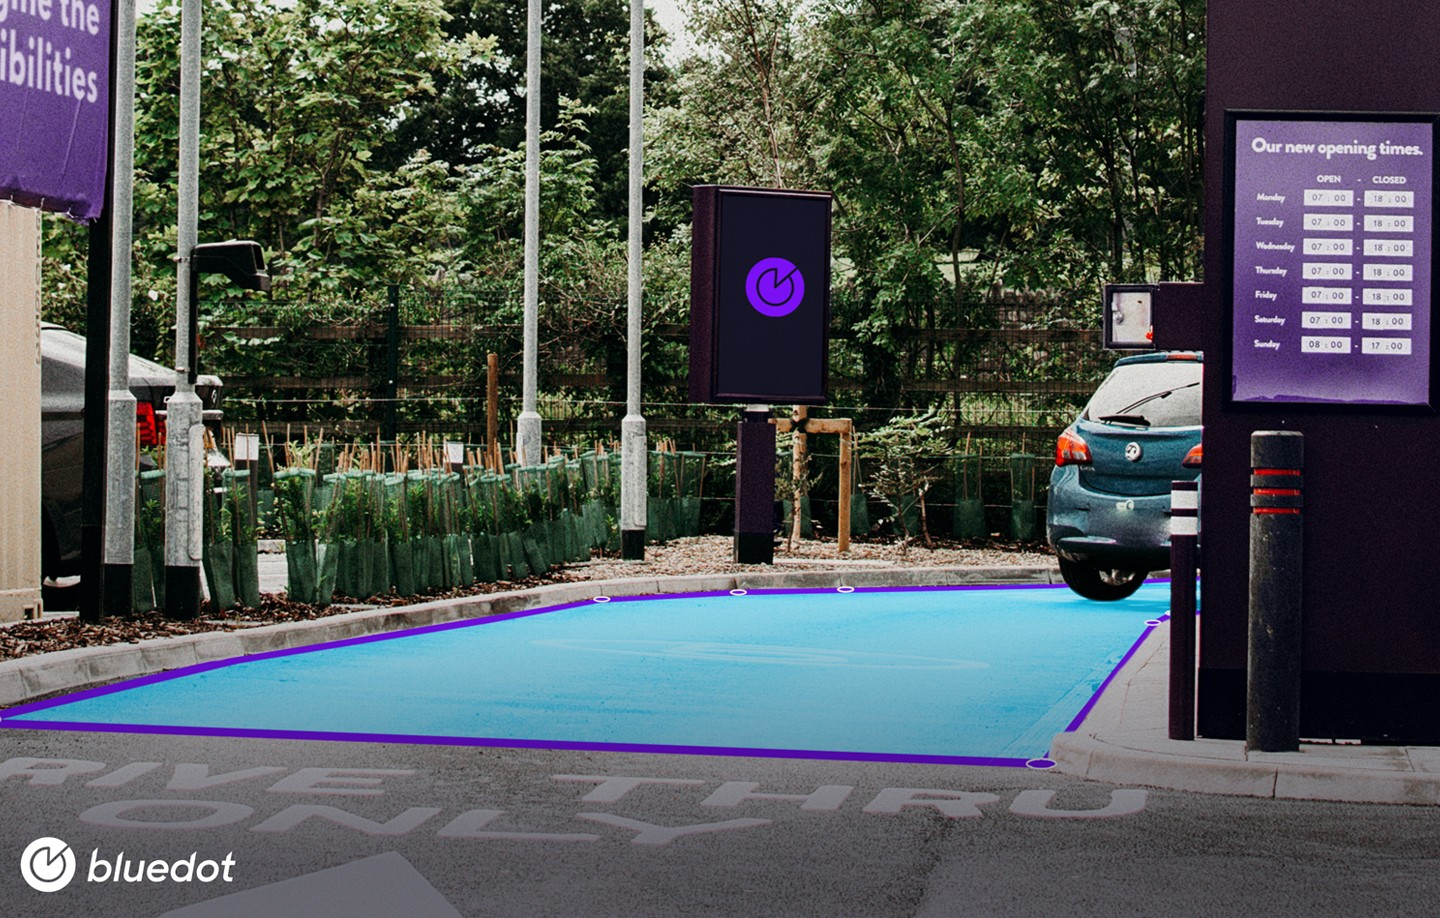 How Restaurants Can Improve Their Drive-Thru Experiences - Featured Image